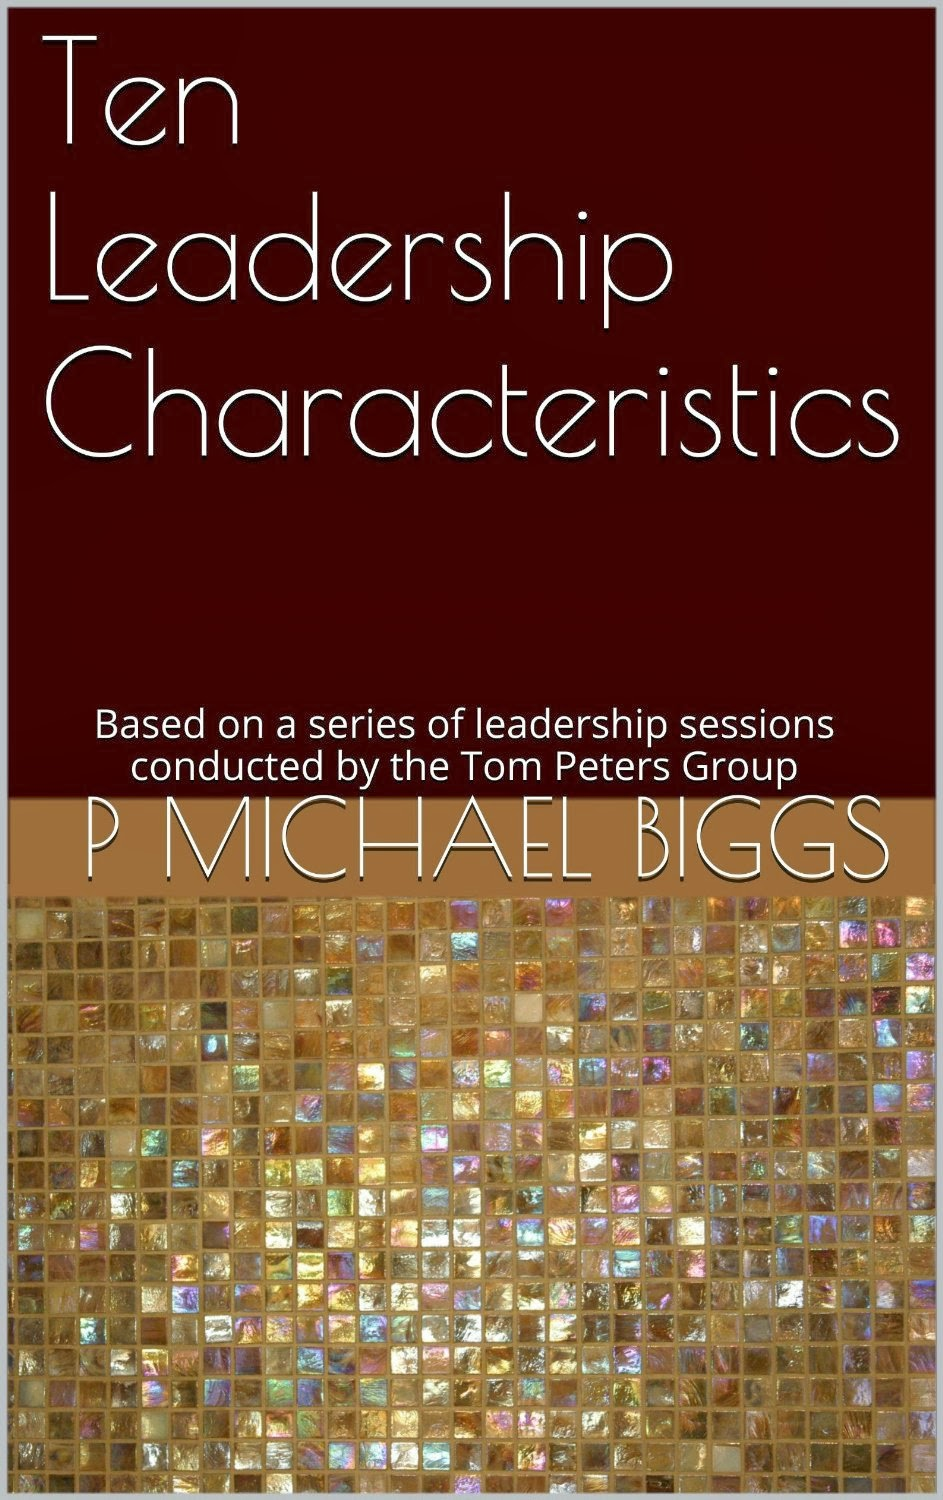 Ten Leadership Characteristics - Now Available on Amazon Kindle